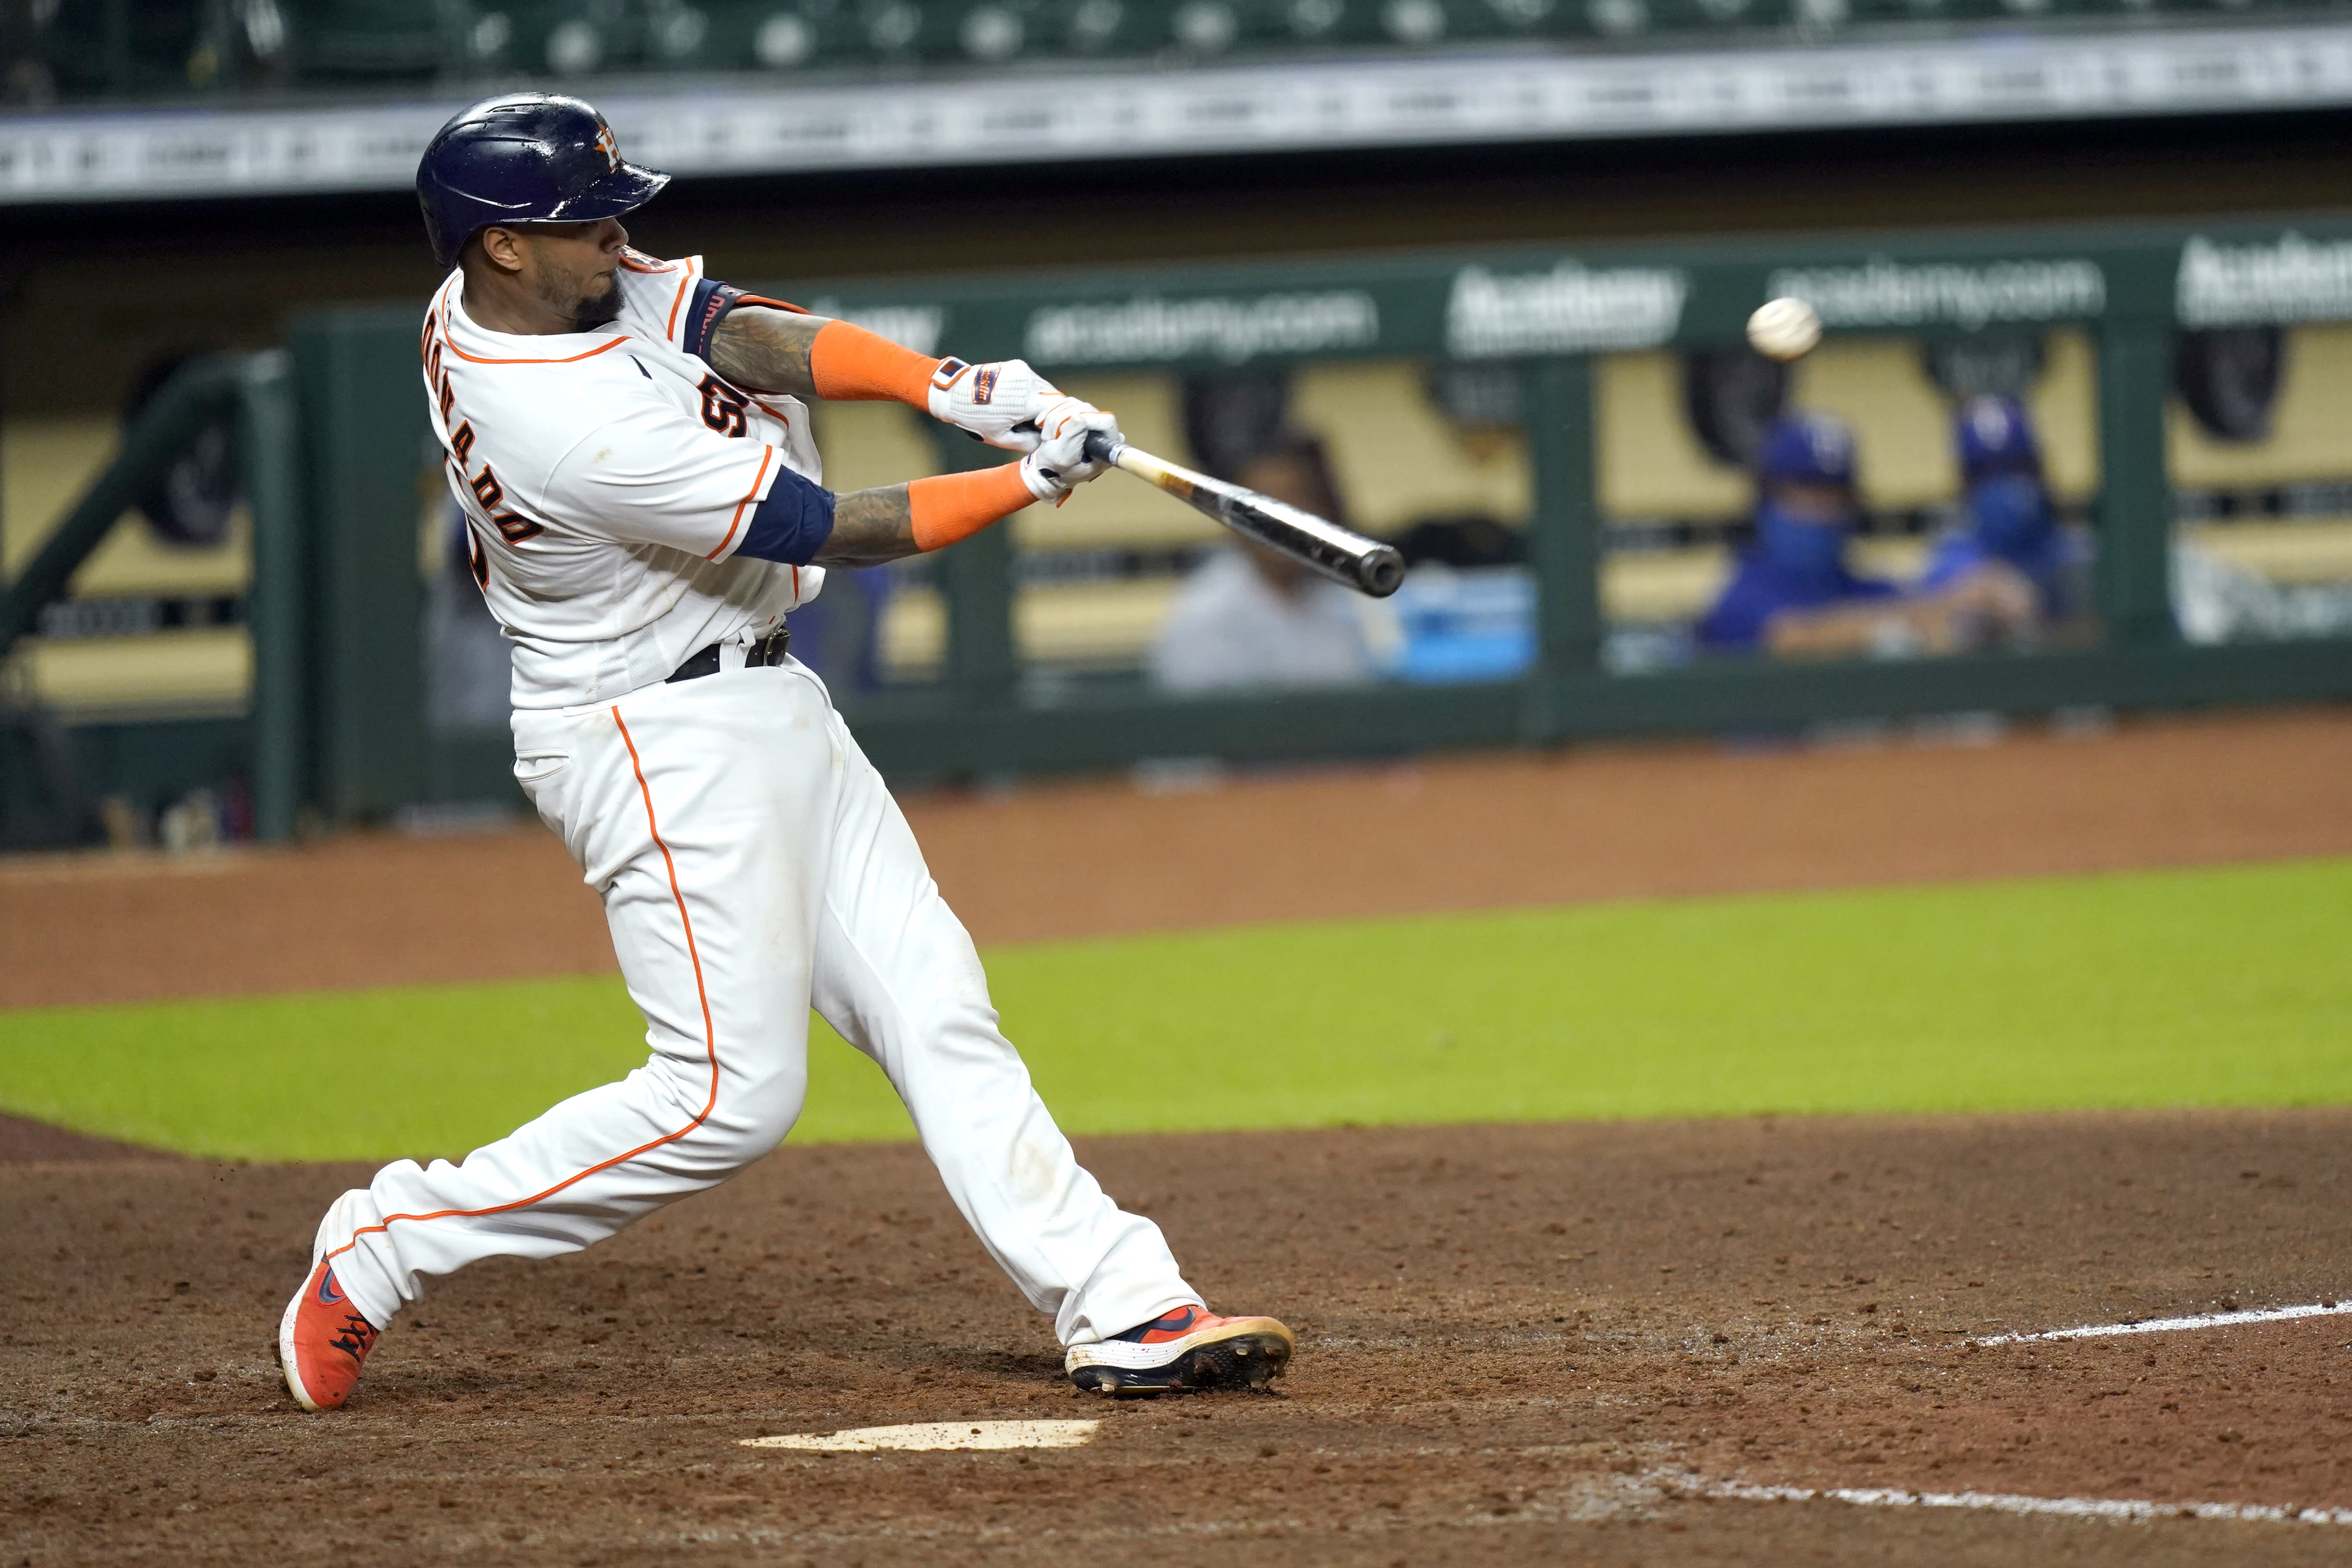 Houston Astros' Martin Maldonado hits a home run against the Texas Rangers during the eighth inning of a baseball game Tuesday, Sept. 15, 2020, in Houston. (AP Photo/David J. Phillip)